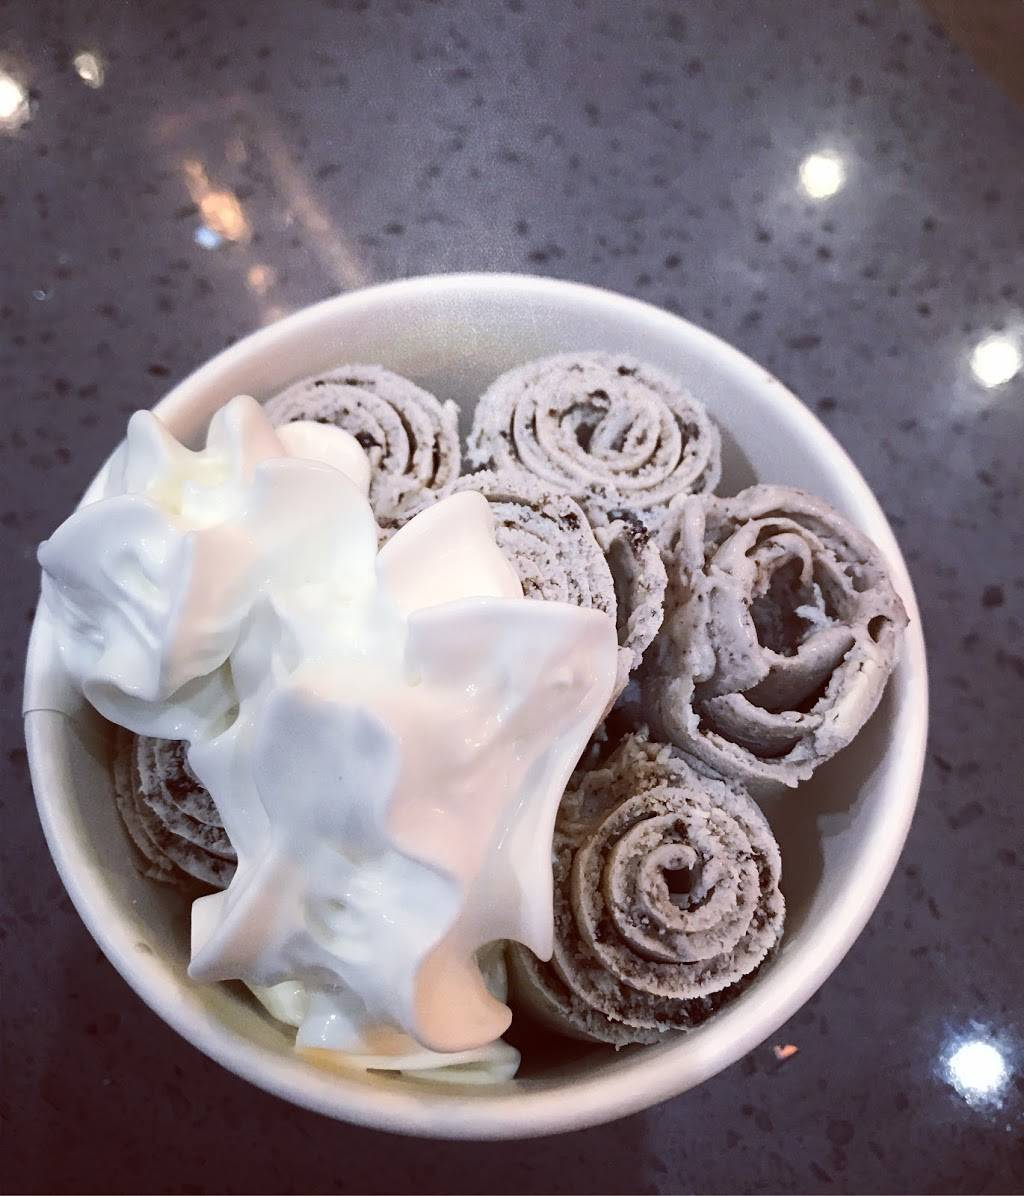 LaChloe Cafe and Rolled Ice Cream | bakery | 6885 SW 18th St b7, Boca Raton, FL 33433, USA | 5613342088 OR +1 561-334-2088